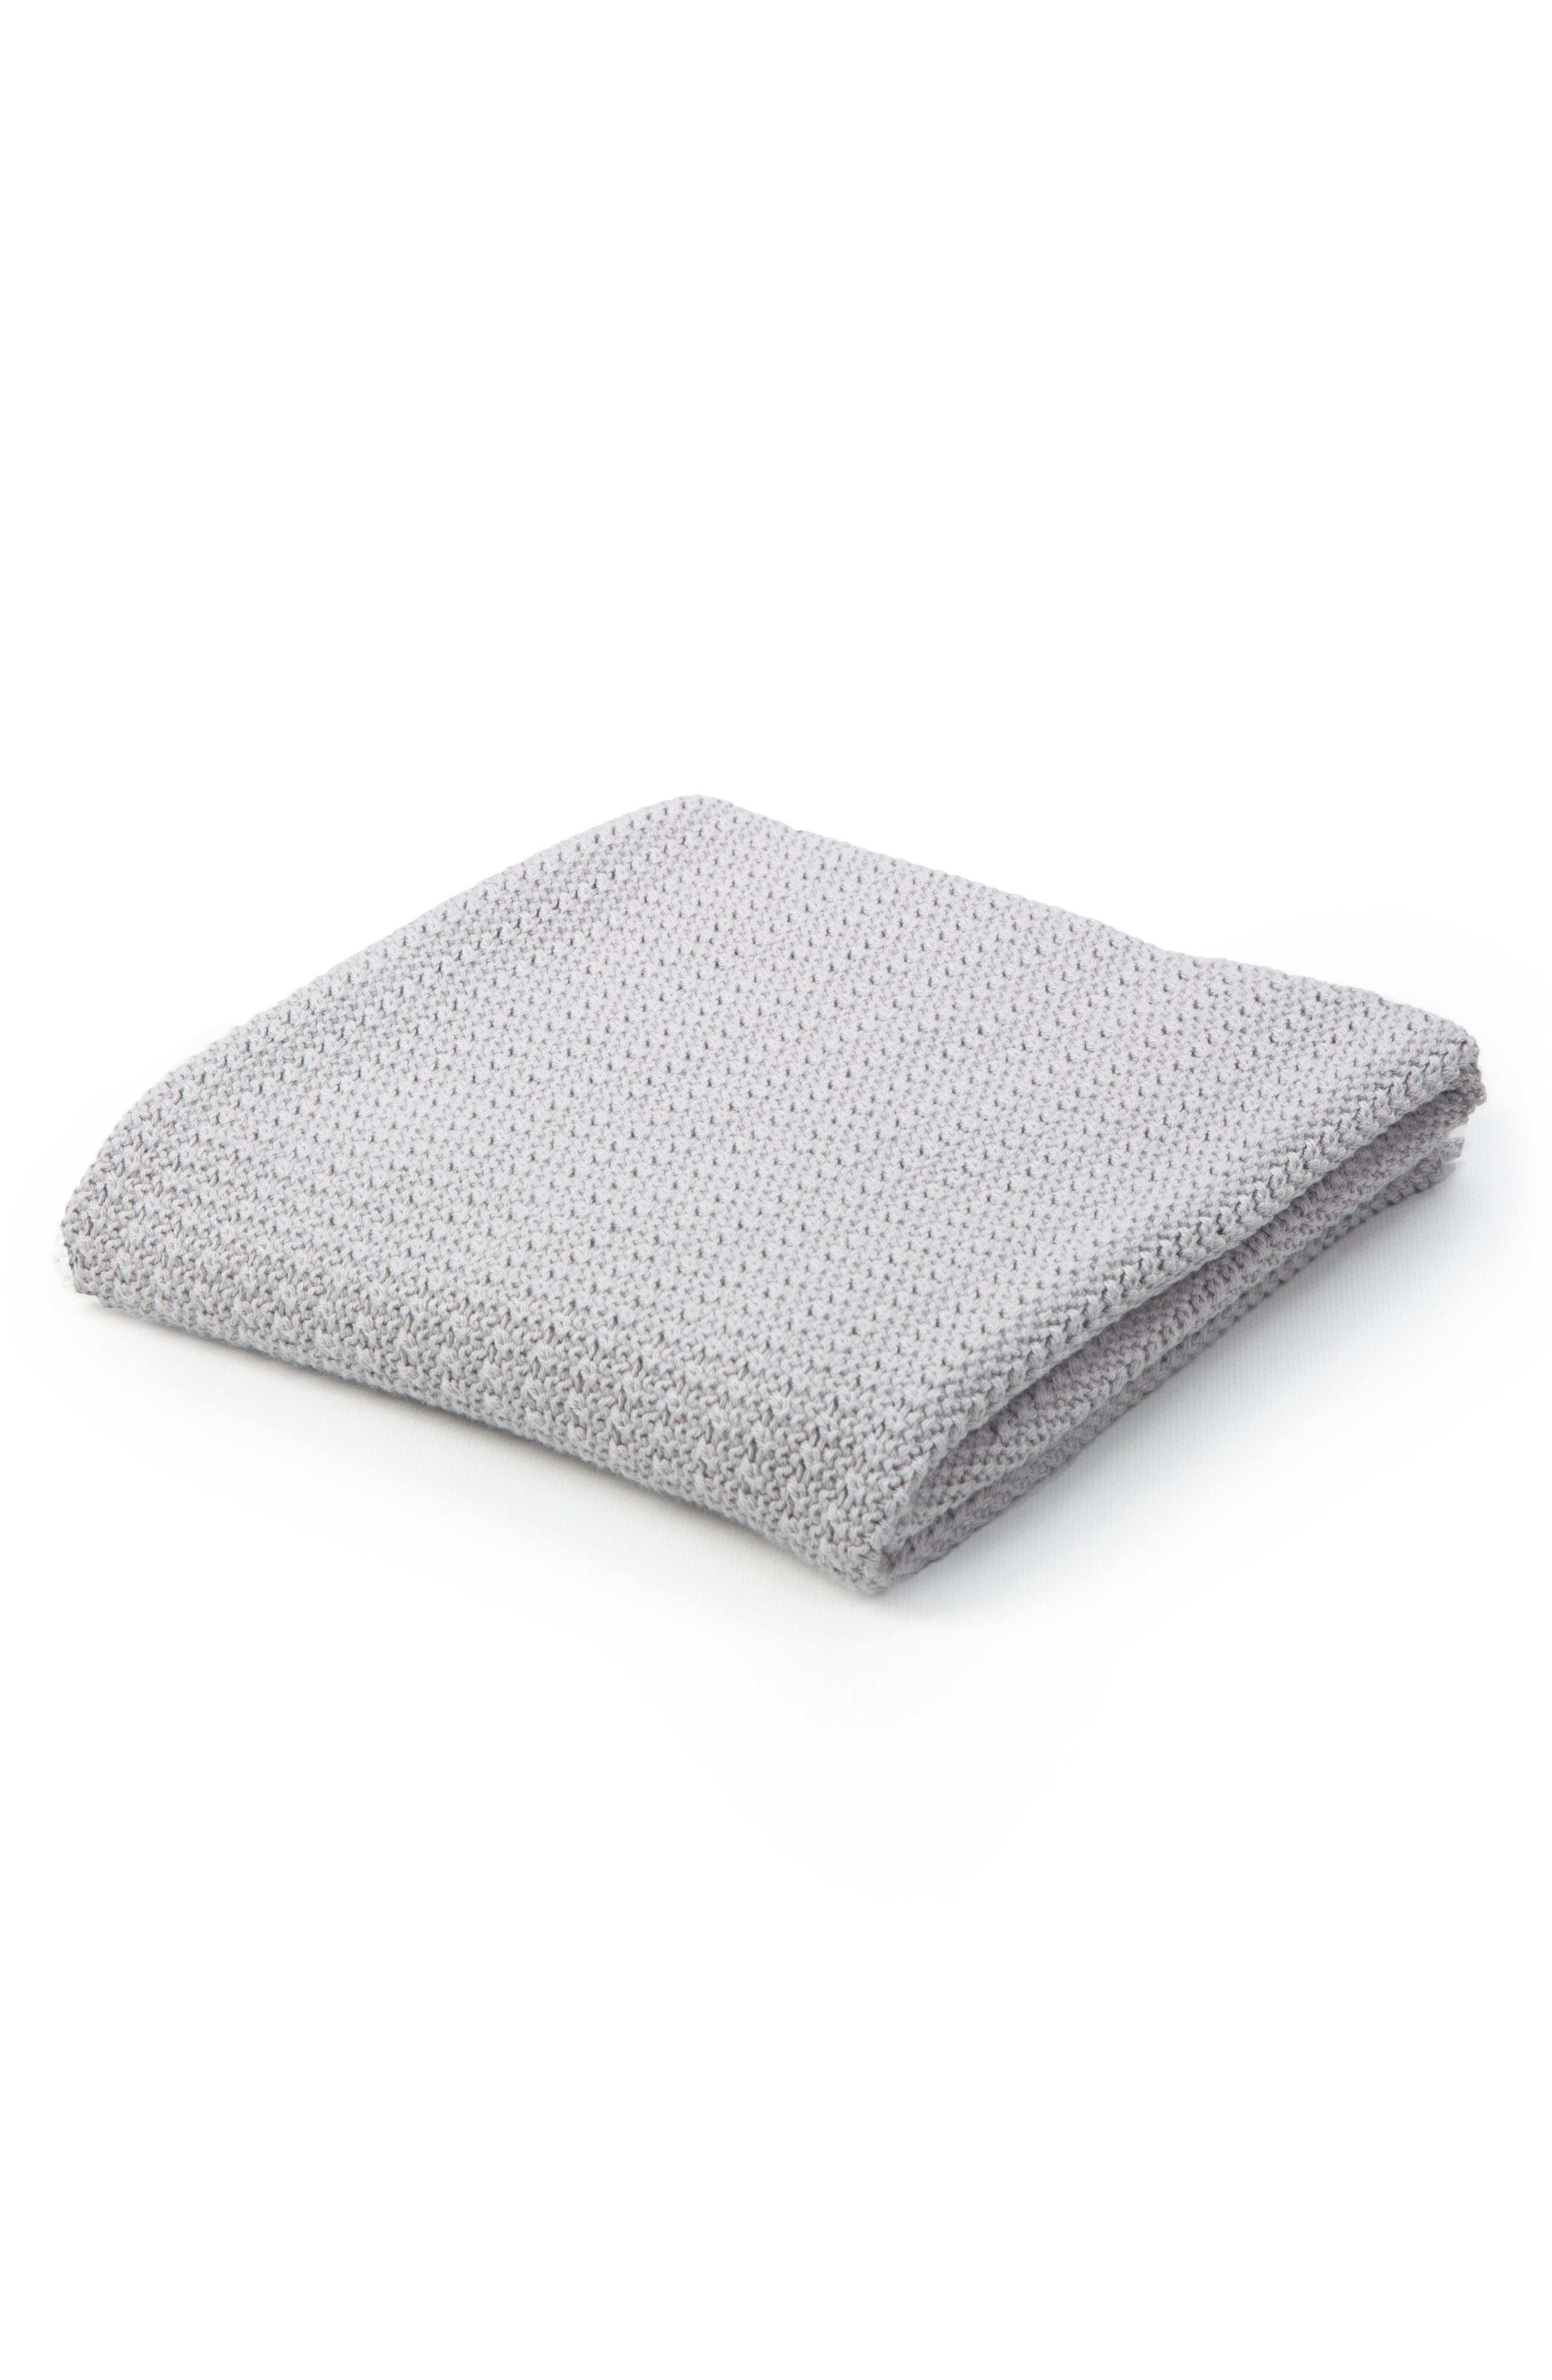 Cellular Cotton Baby Blanket,                             Main thumbnail 1, color,